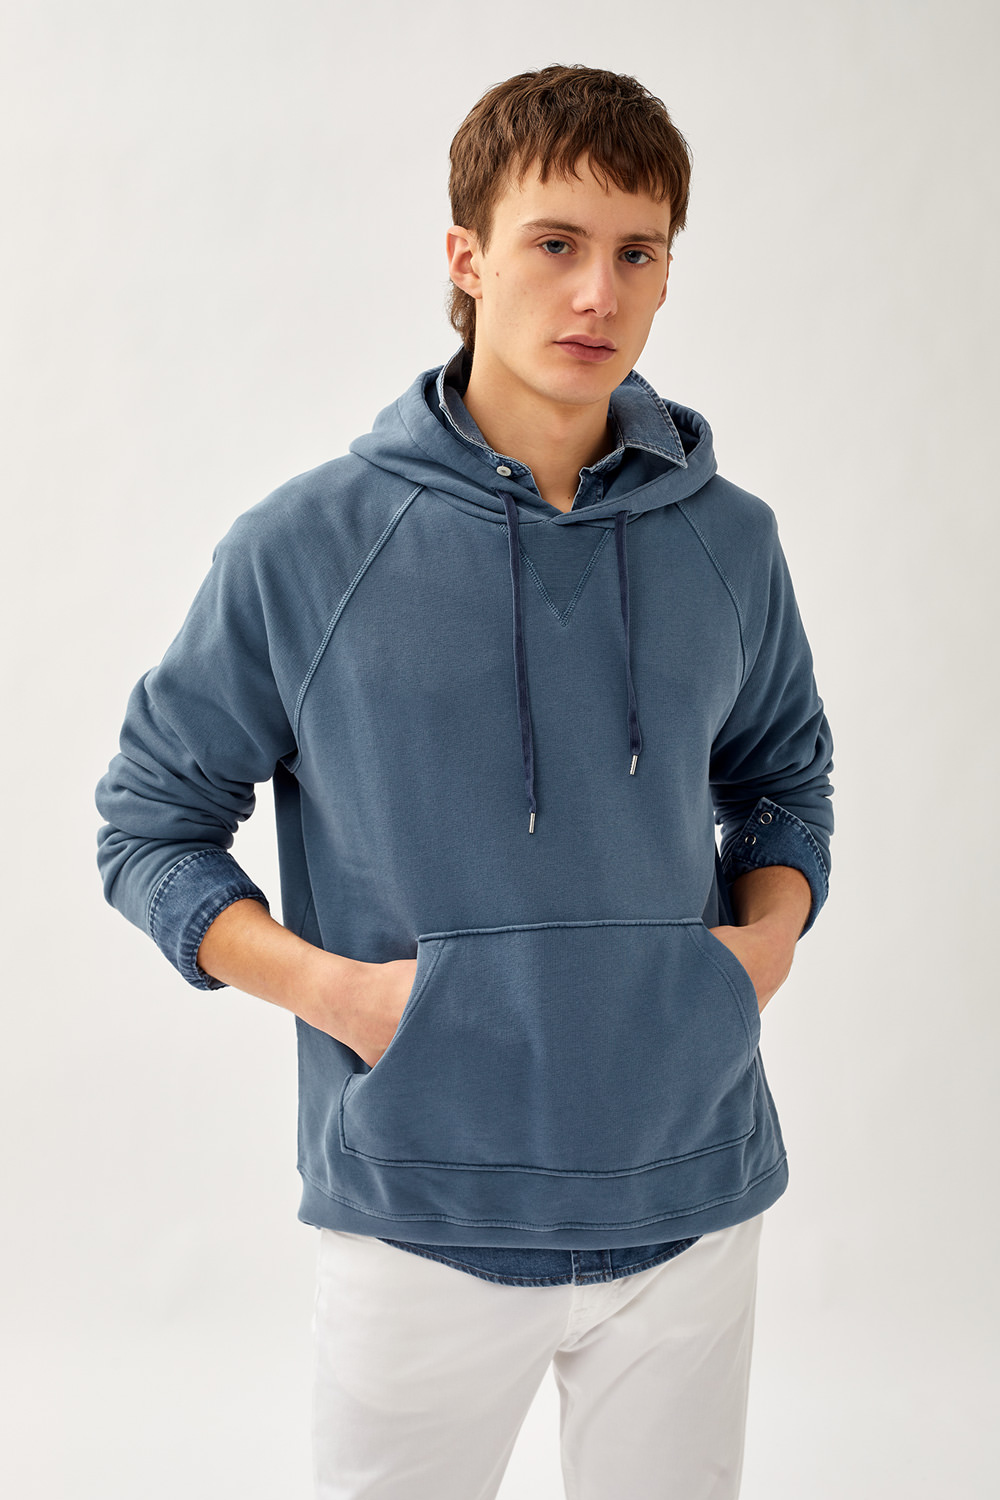 ROY ROGERS: HOODED SWEATSHIRT IN ORGANIC COTTON